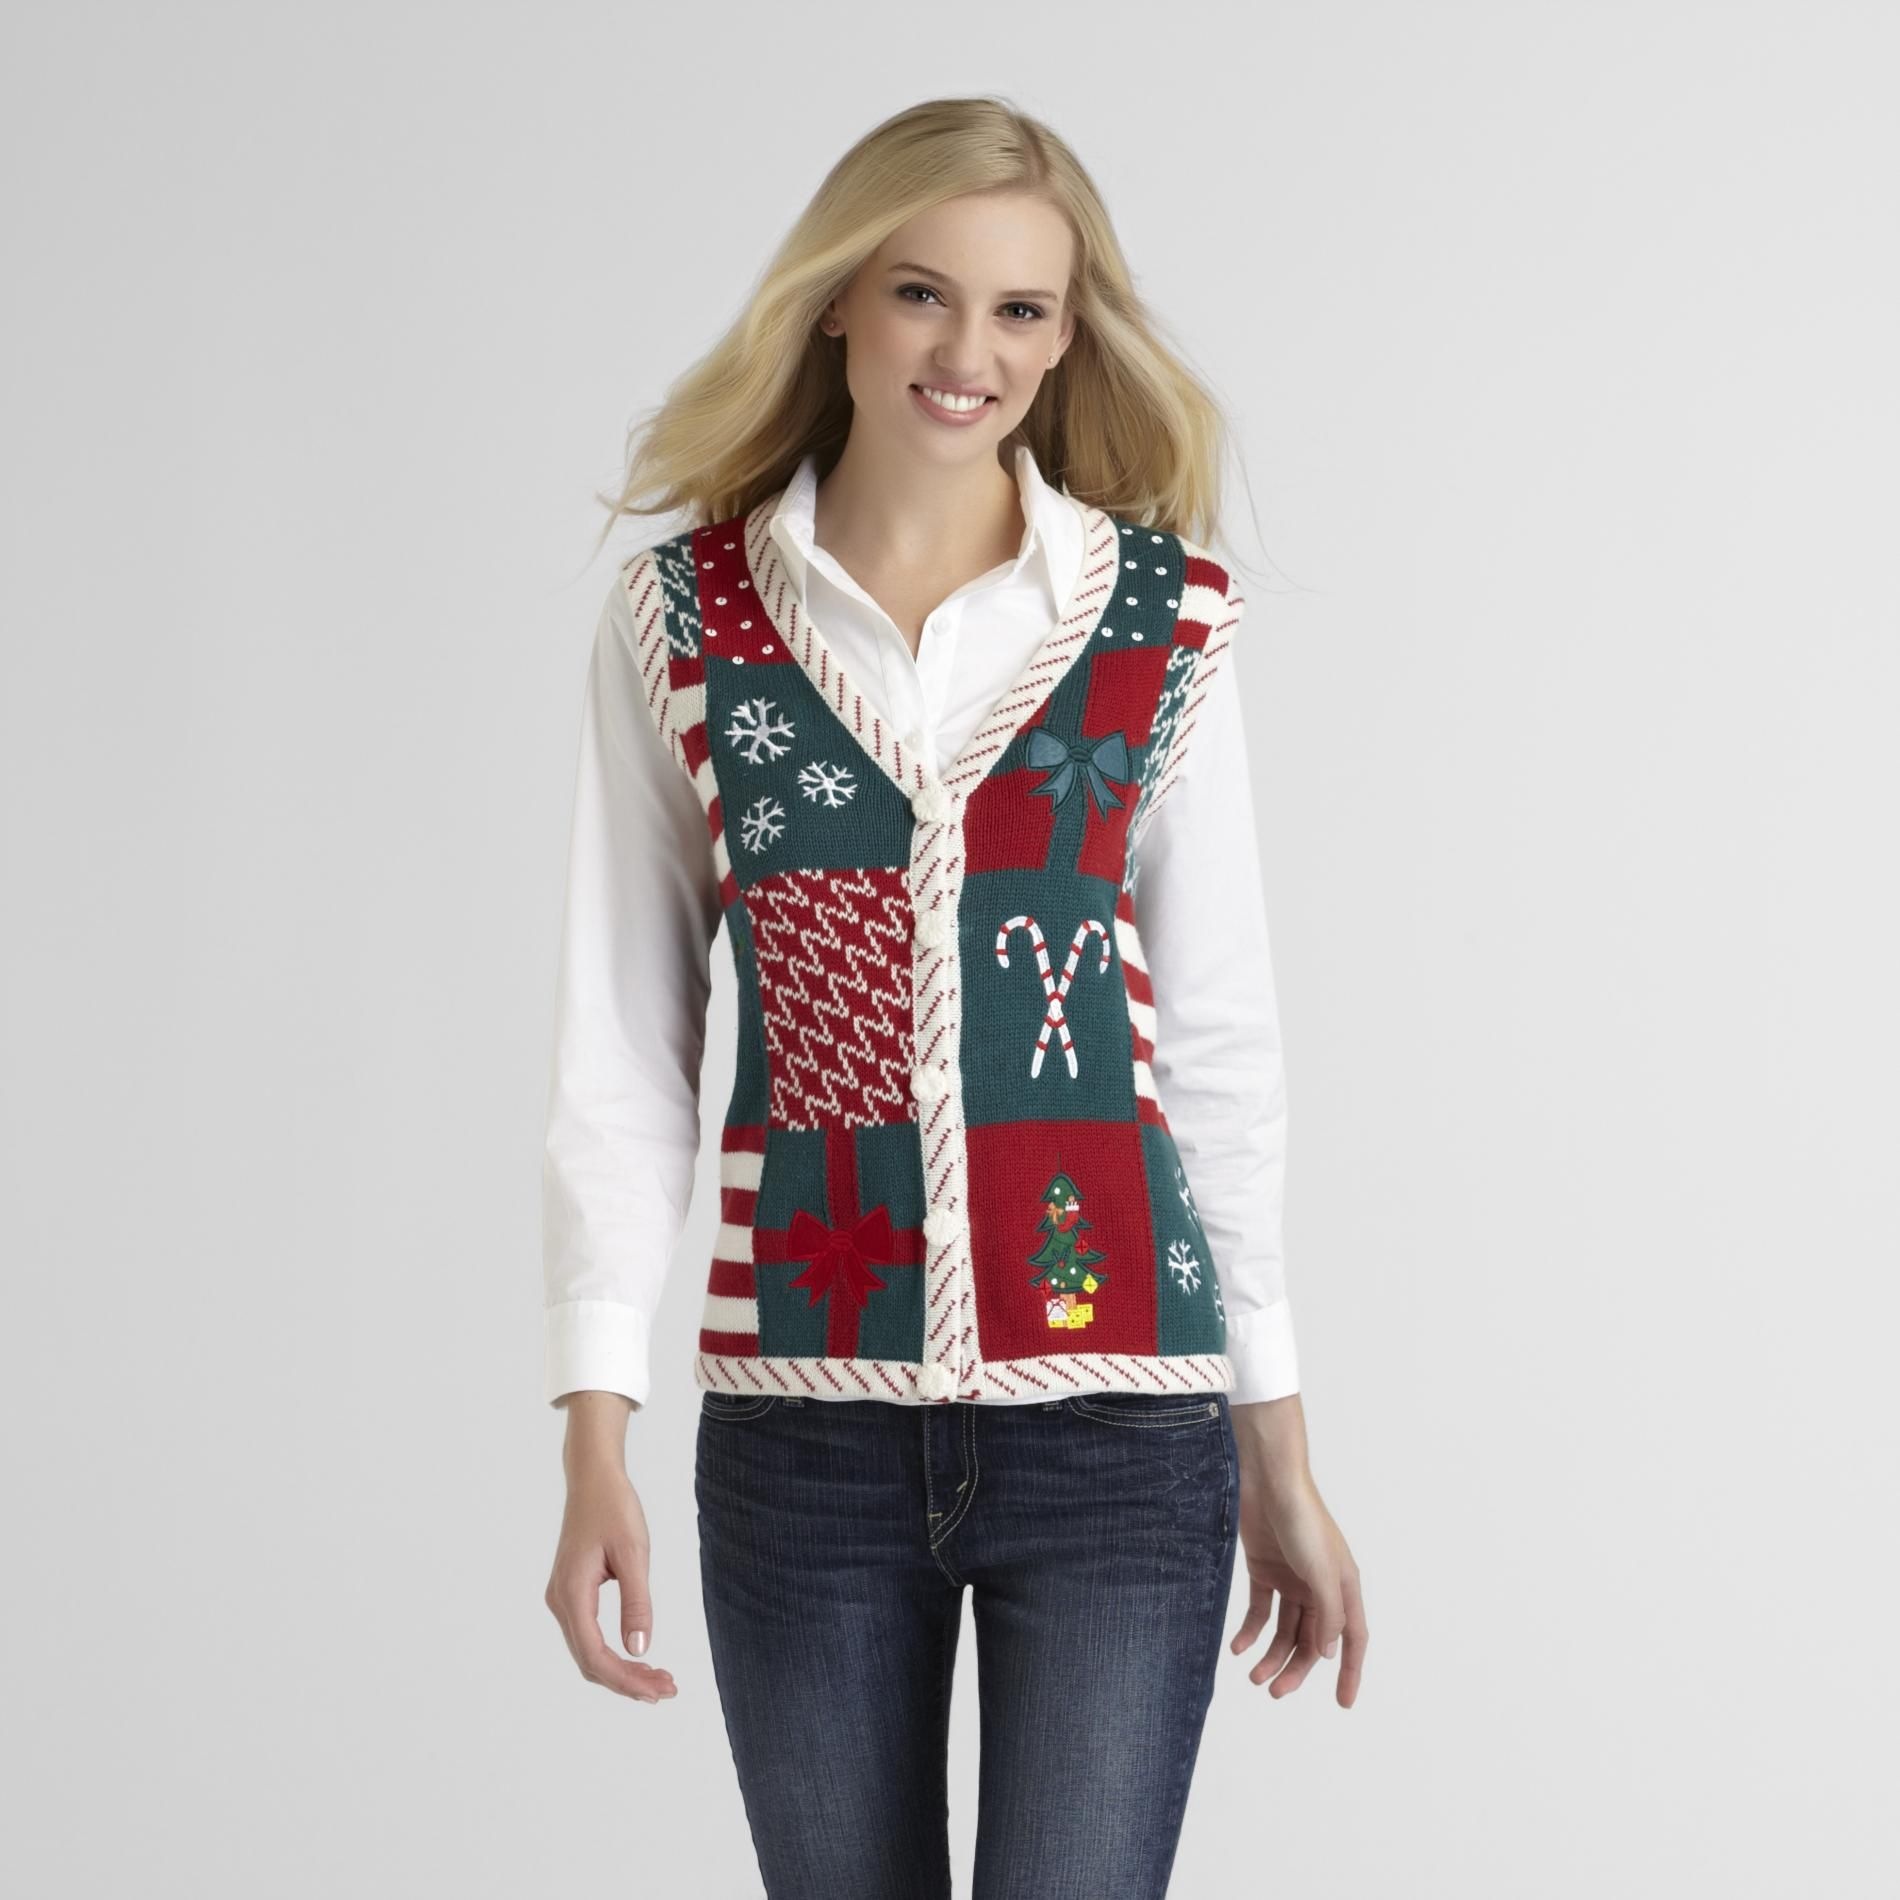 Holiday Editions Women's Christmas Sweater Vest